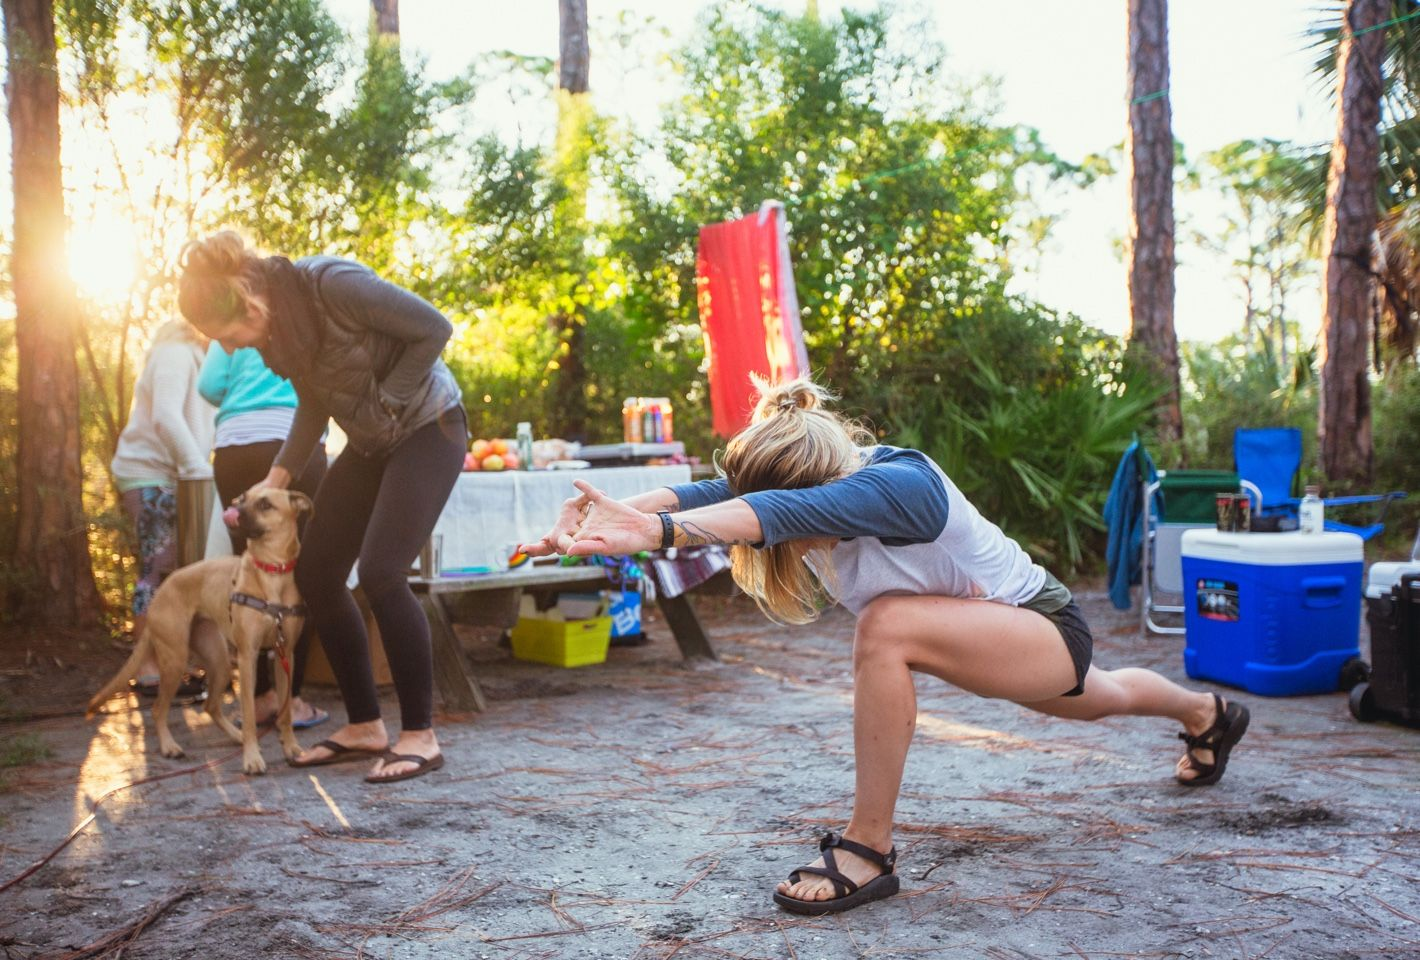 woman lunging at campsite